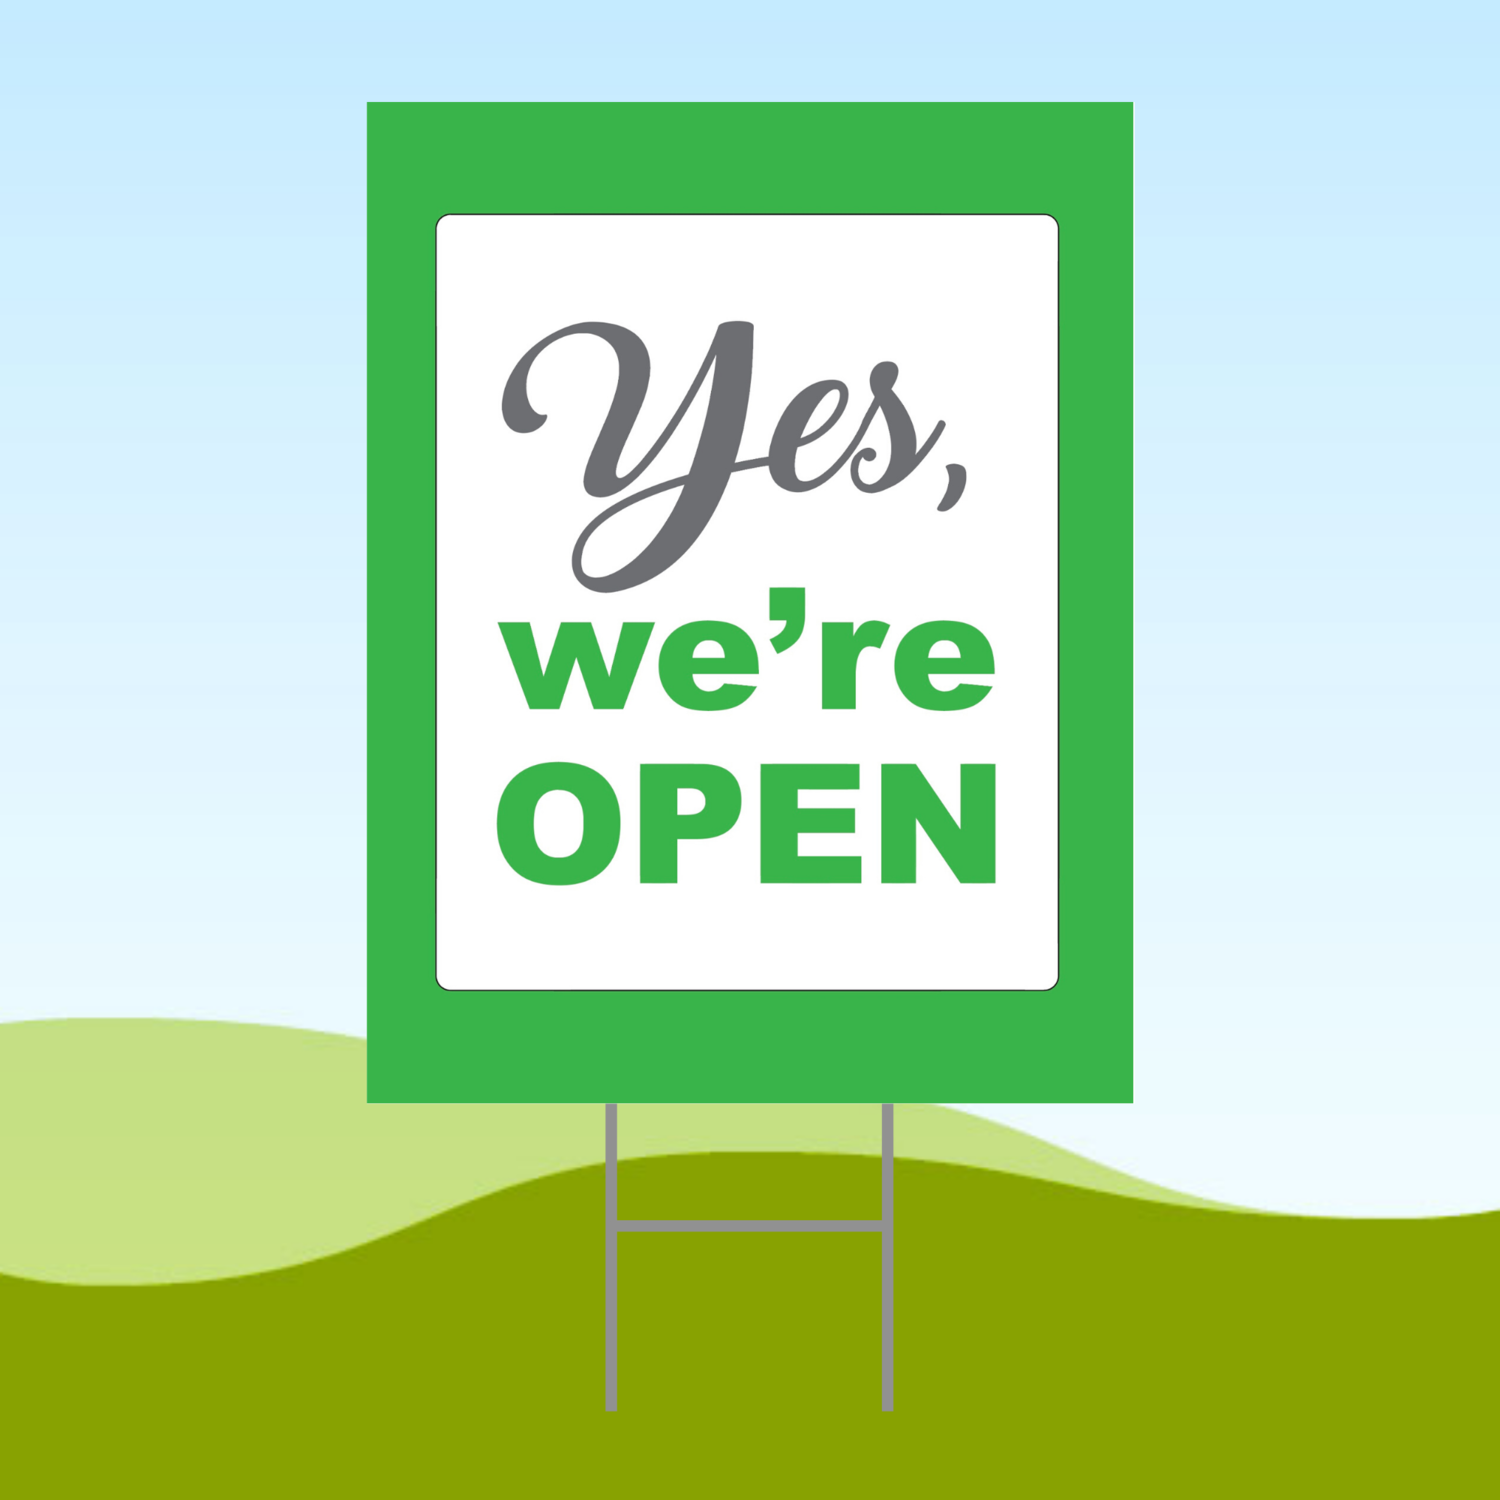 Yes, We're Open 18x24 Yard Sign WITH STAKE Corrugated Plastic Bandit